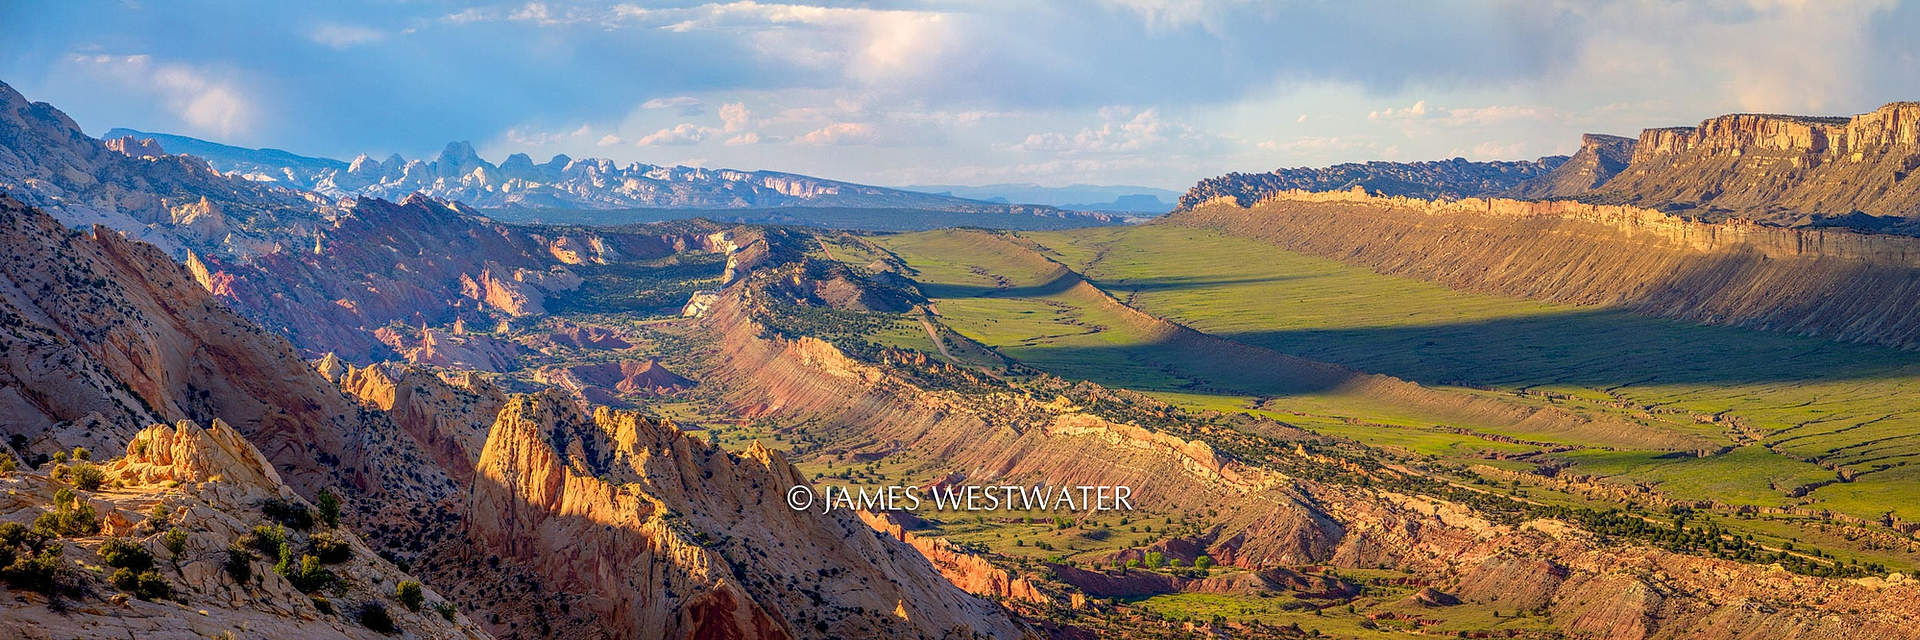 Strike Valley Overlook, Water Pocket Fold, Capitol Reef National Park, Utah